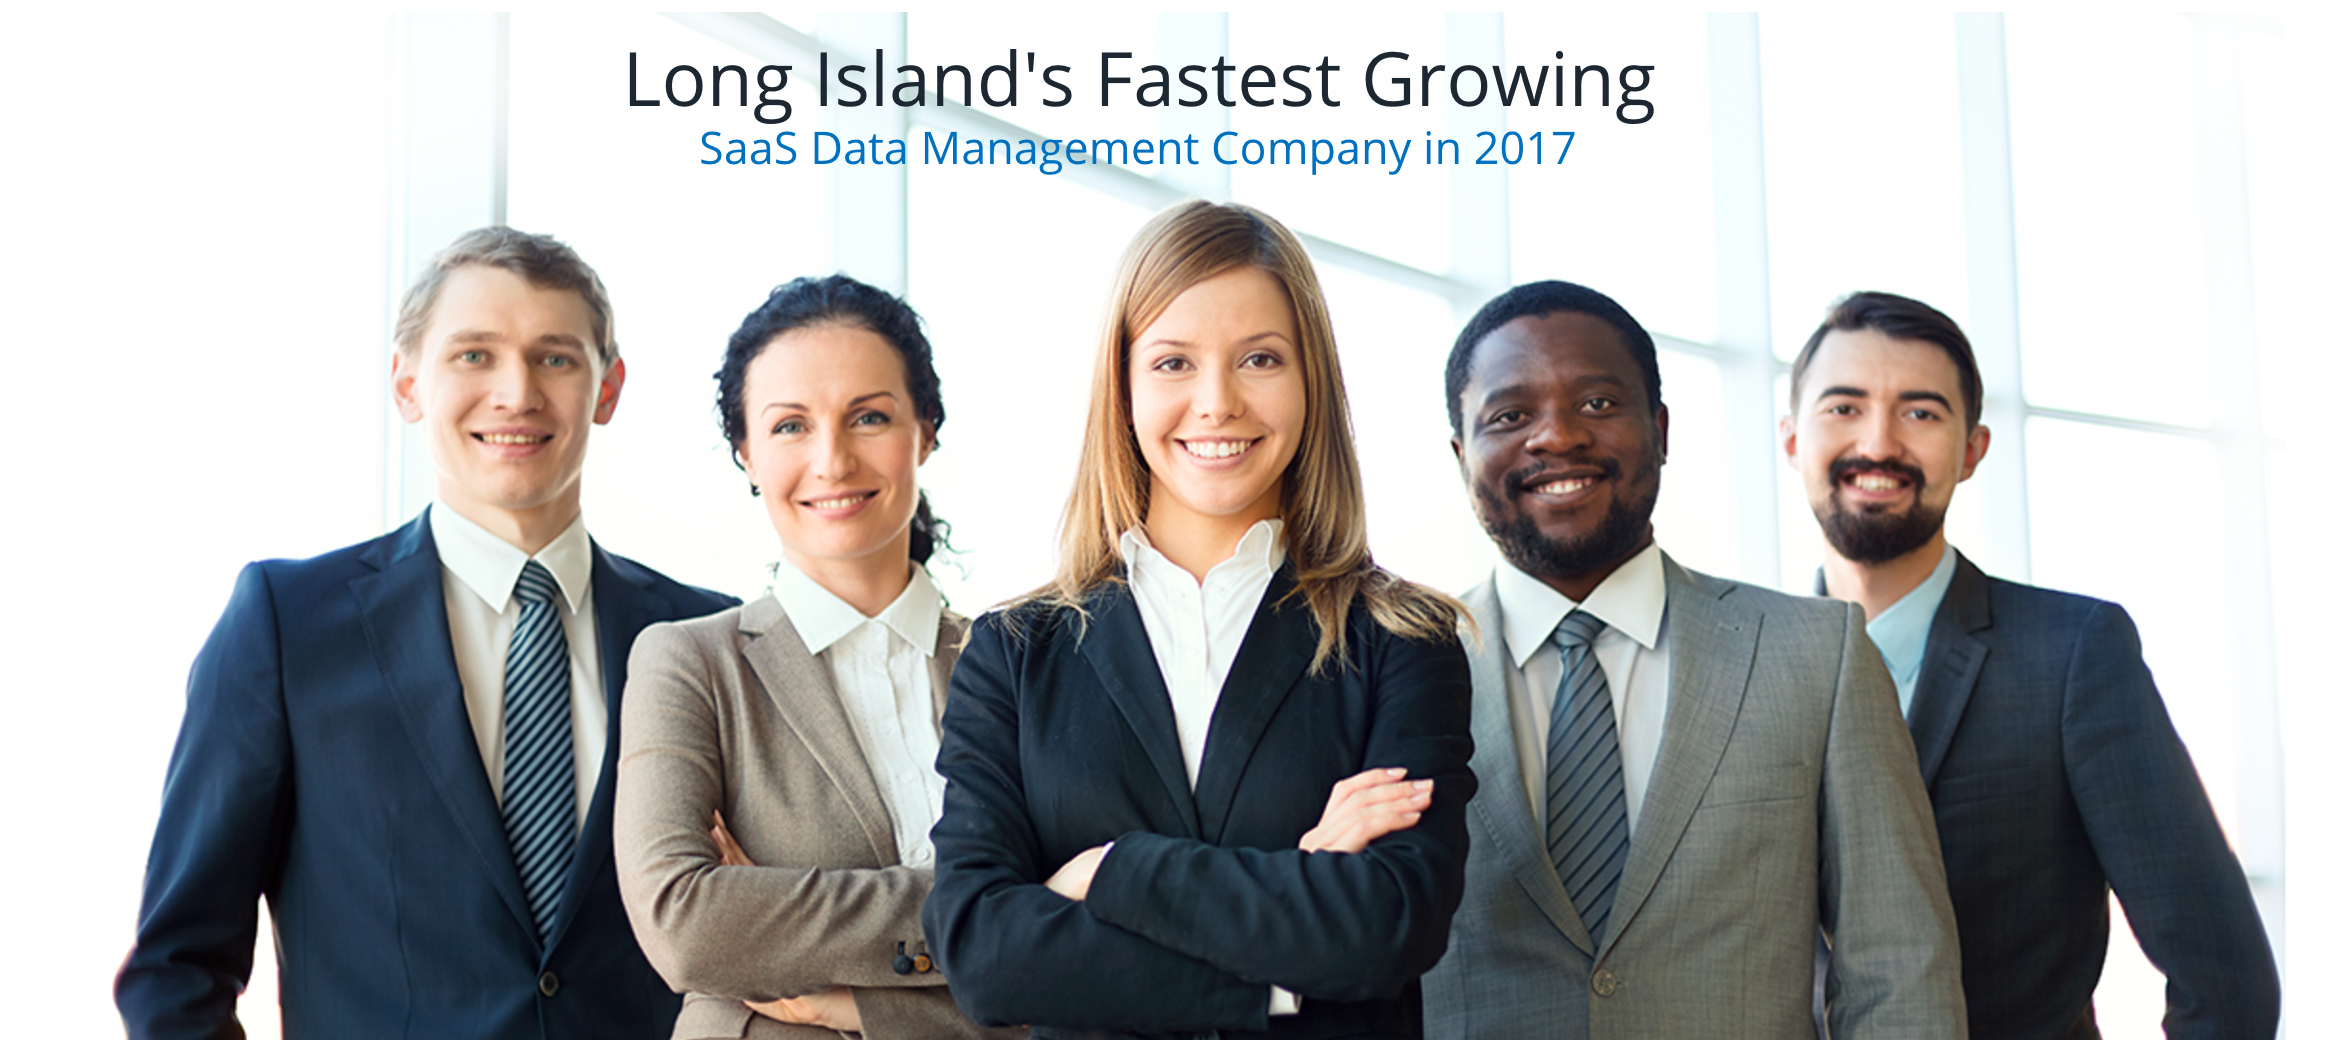 Long Island SaaS Company RingLead to Create 50 Jobs on Long Island in 2017